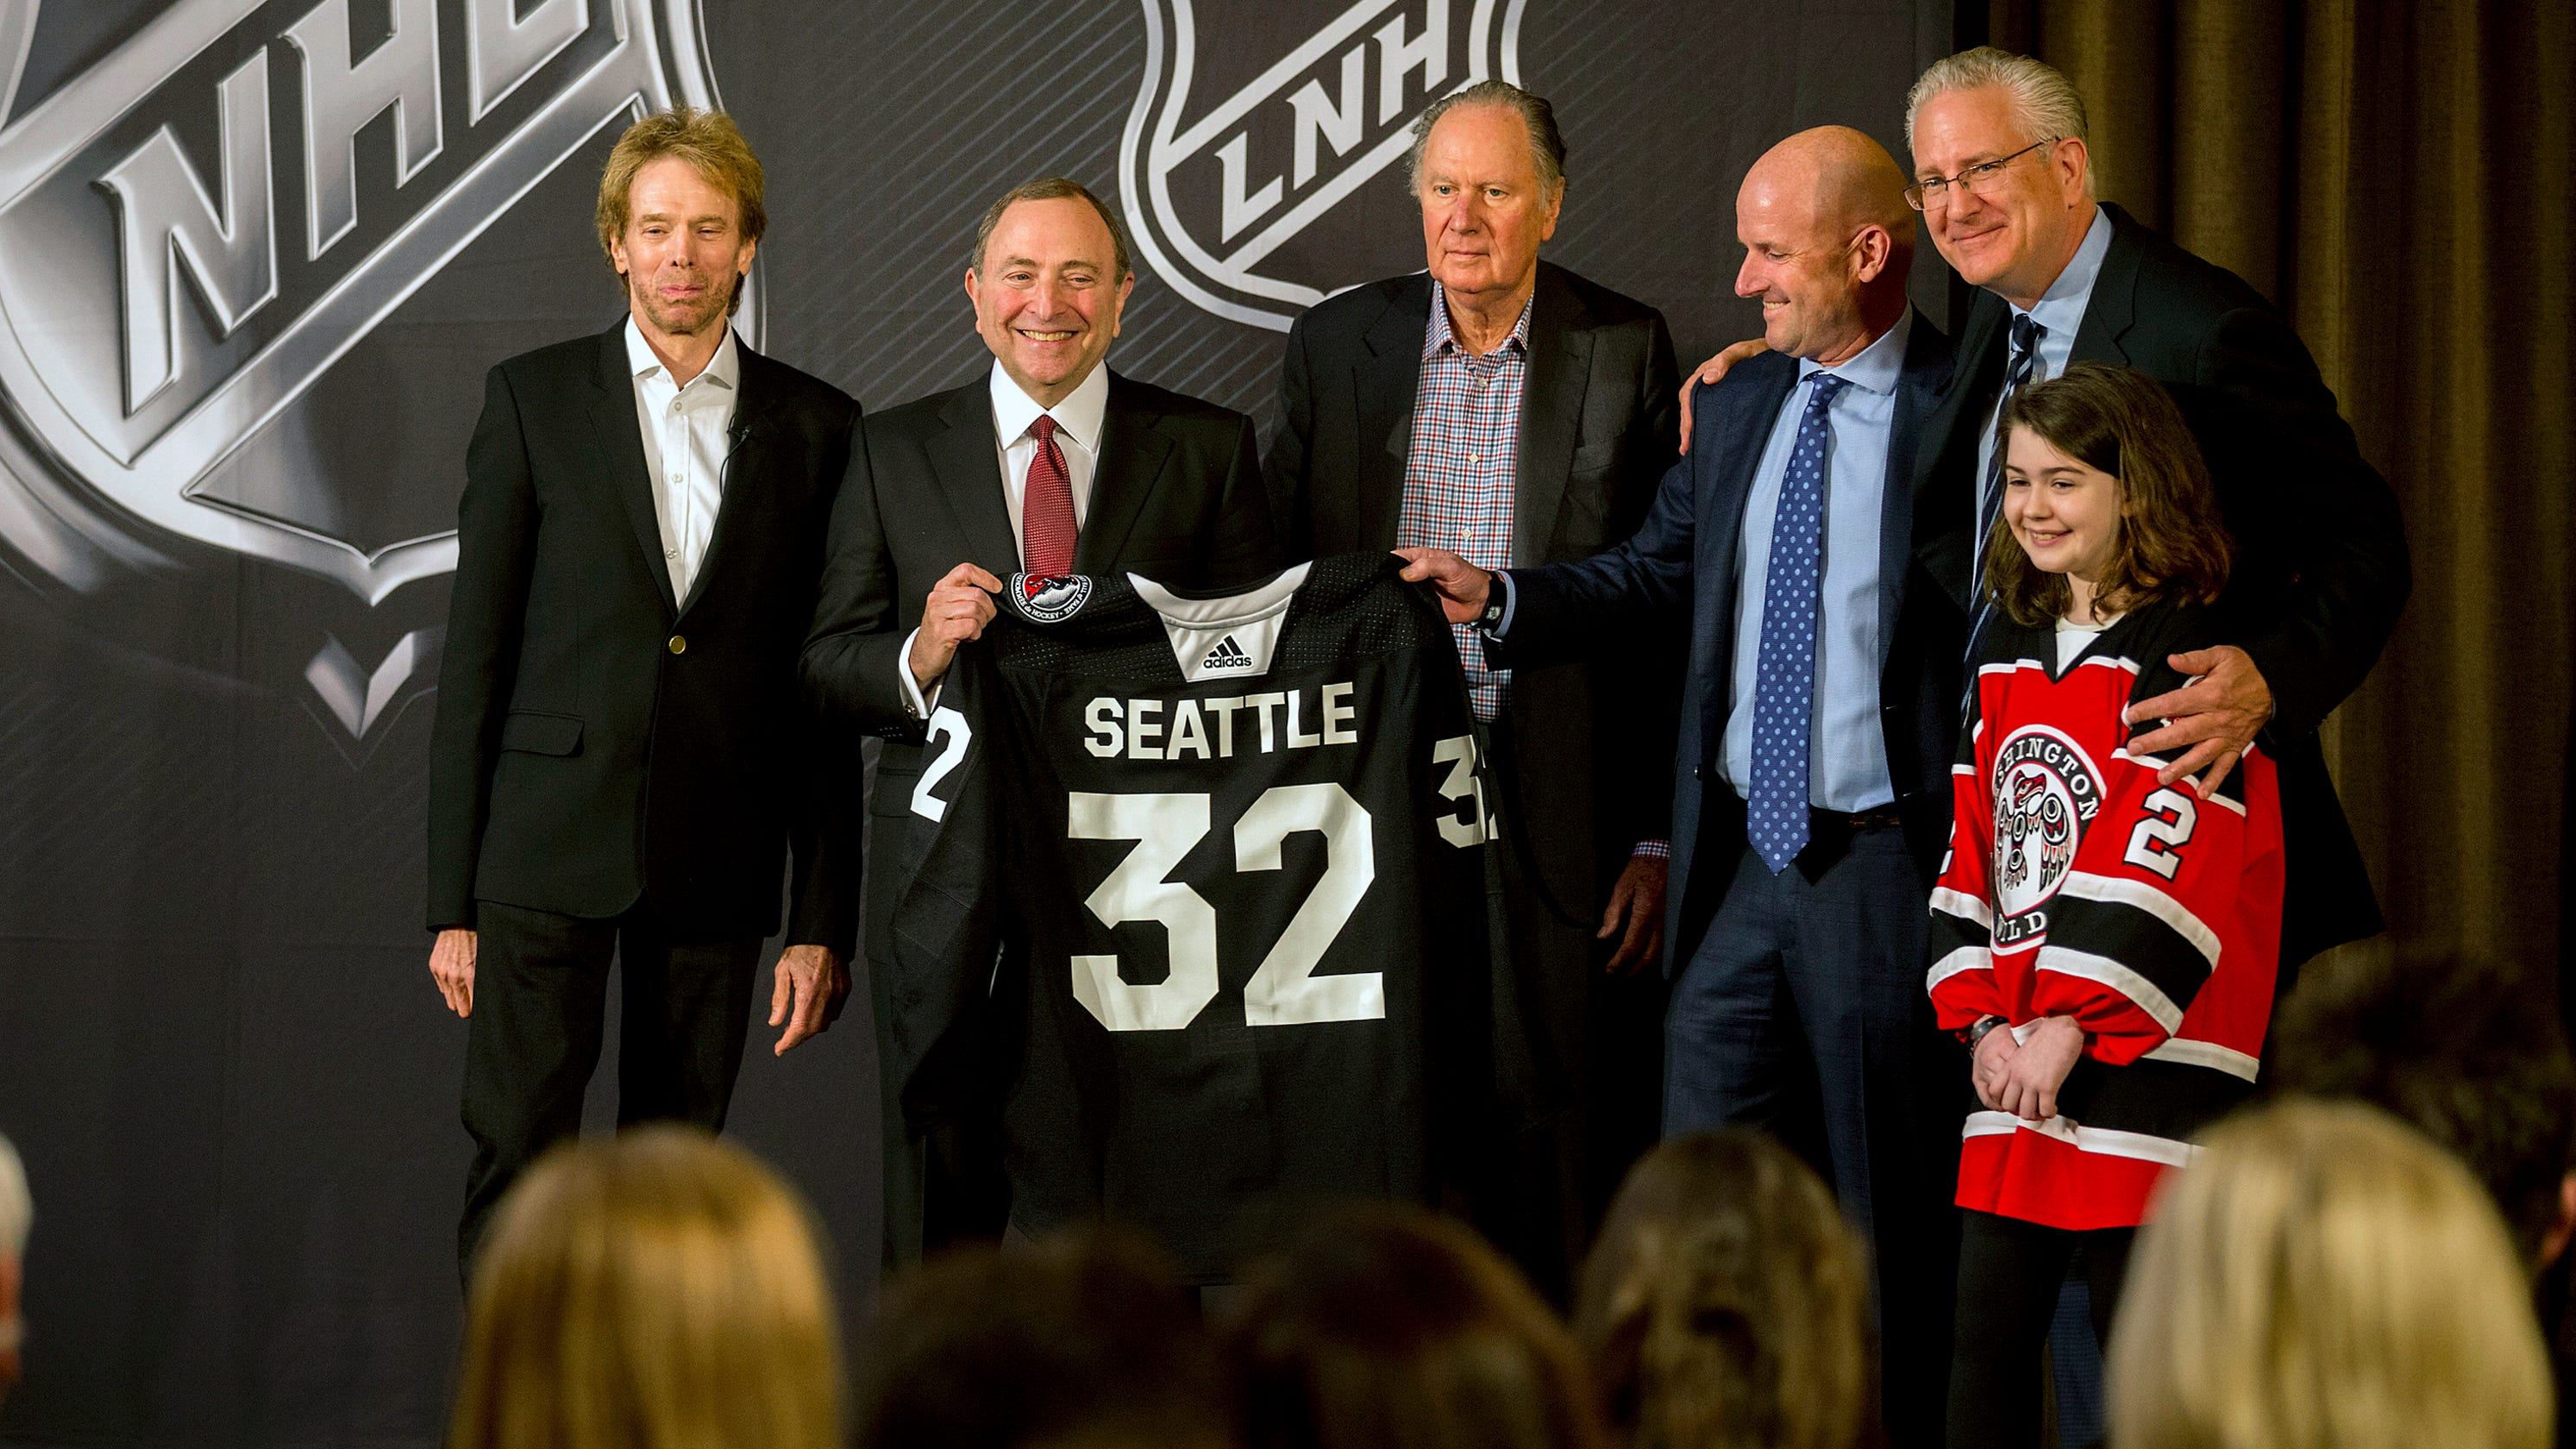 c9e68d029 Seattle will become NHL s 32nd team. Here s what you should know about  expansion franchise